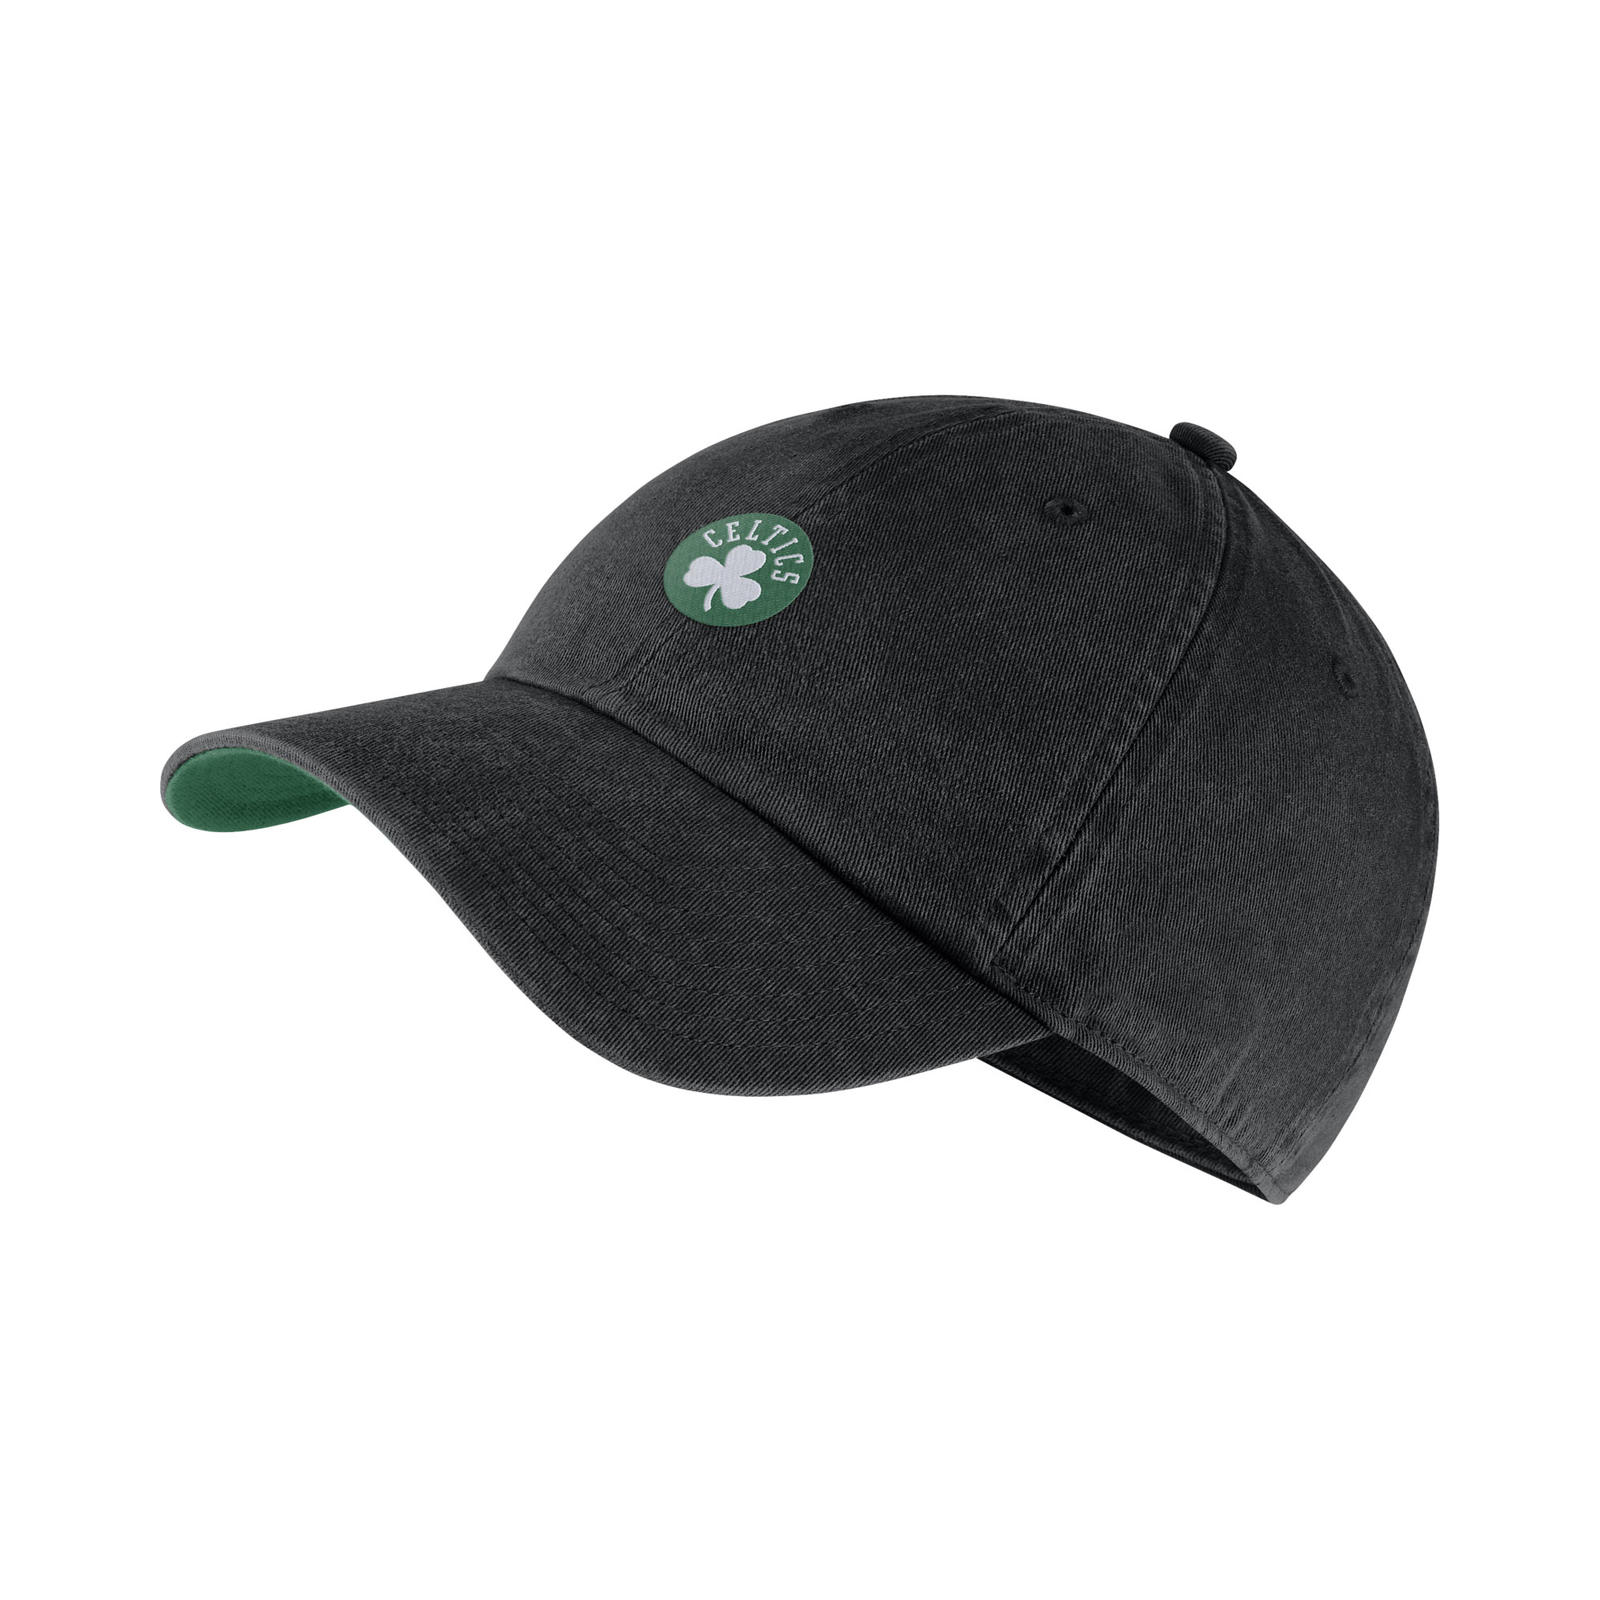 Nba celticshat 930295 010 a re square 1600